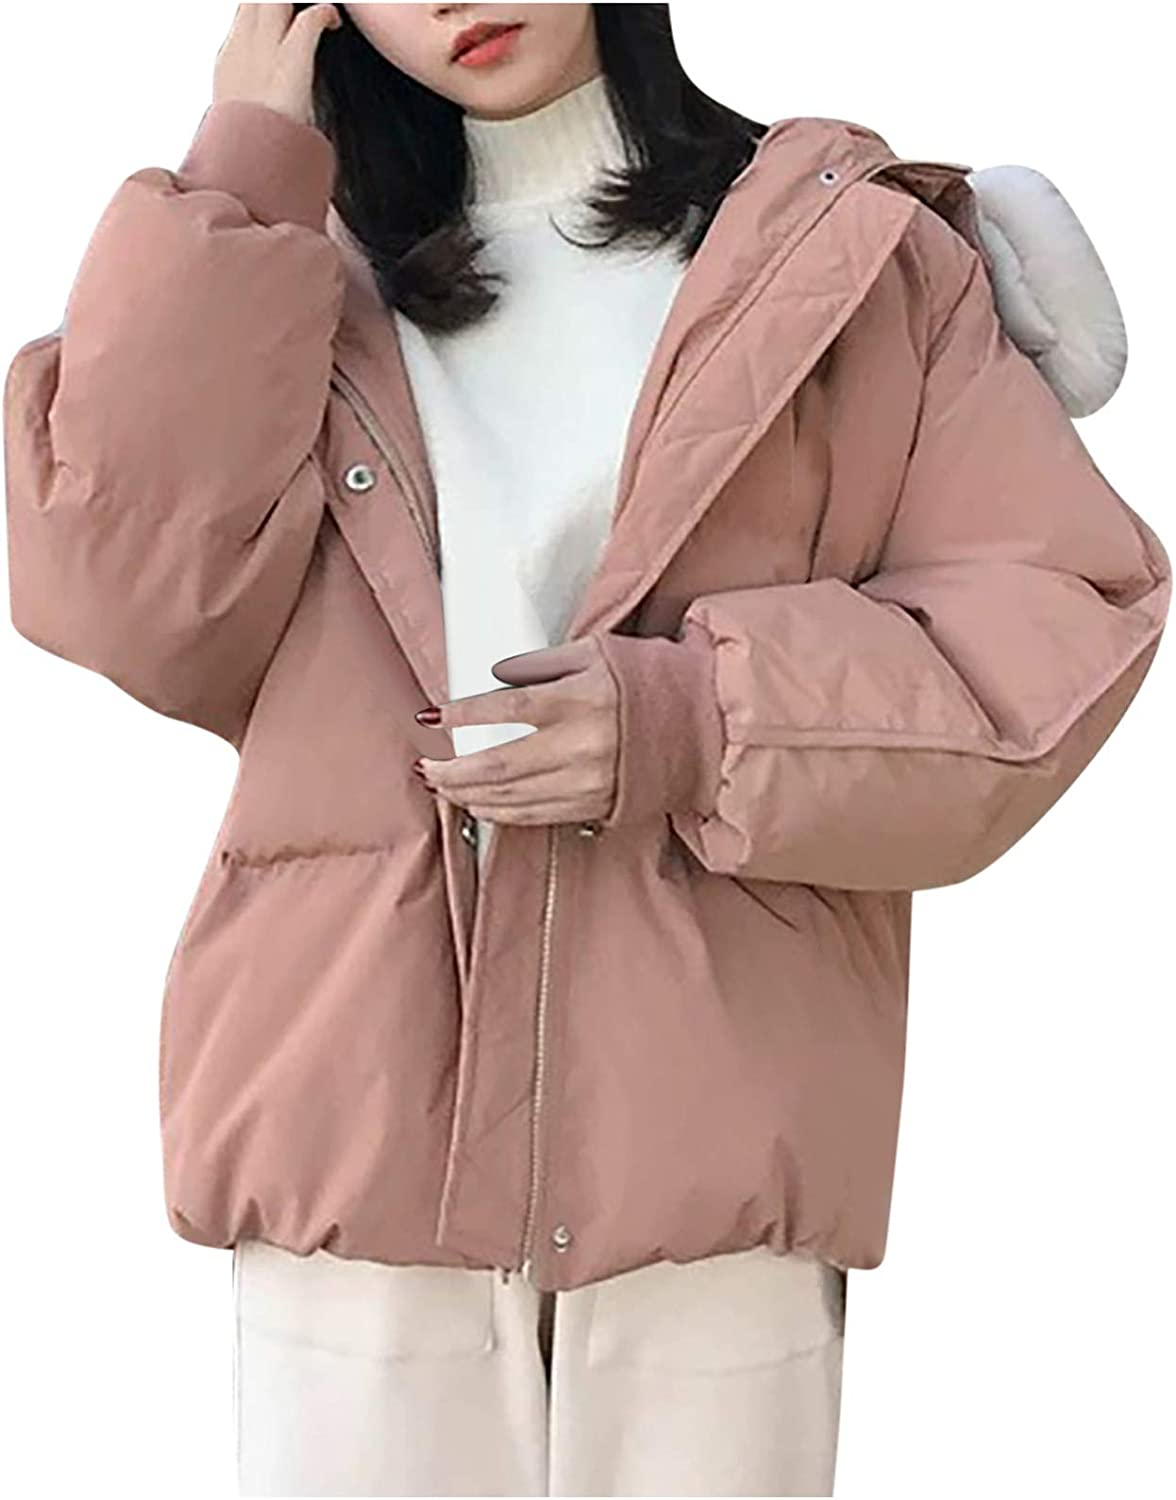 HGWXX7 Womens Coat Oversized Faux Fur Hooded Bread Overcoat Zip Up Long Sleeve Winter Fashion Down Jacket with Pockets Pink